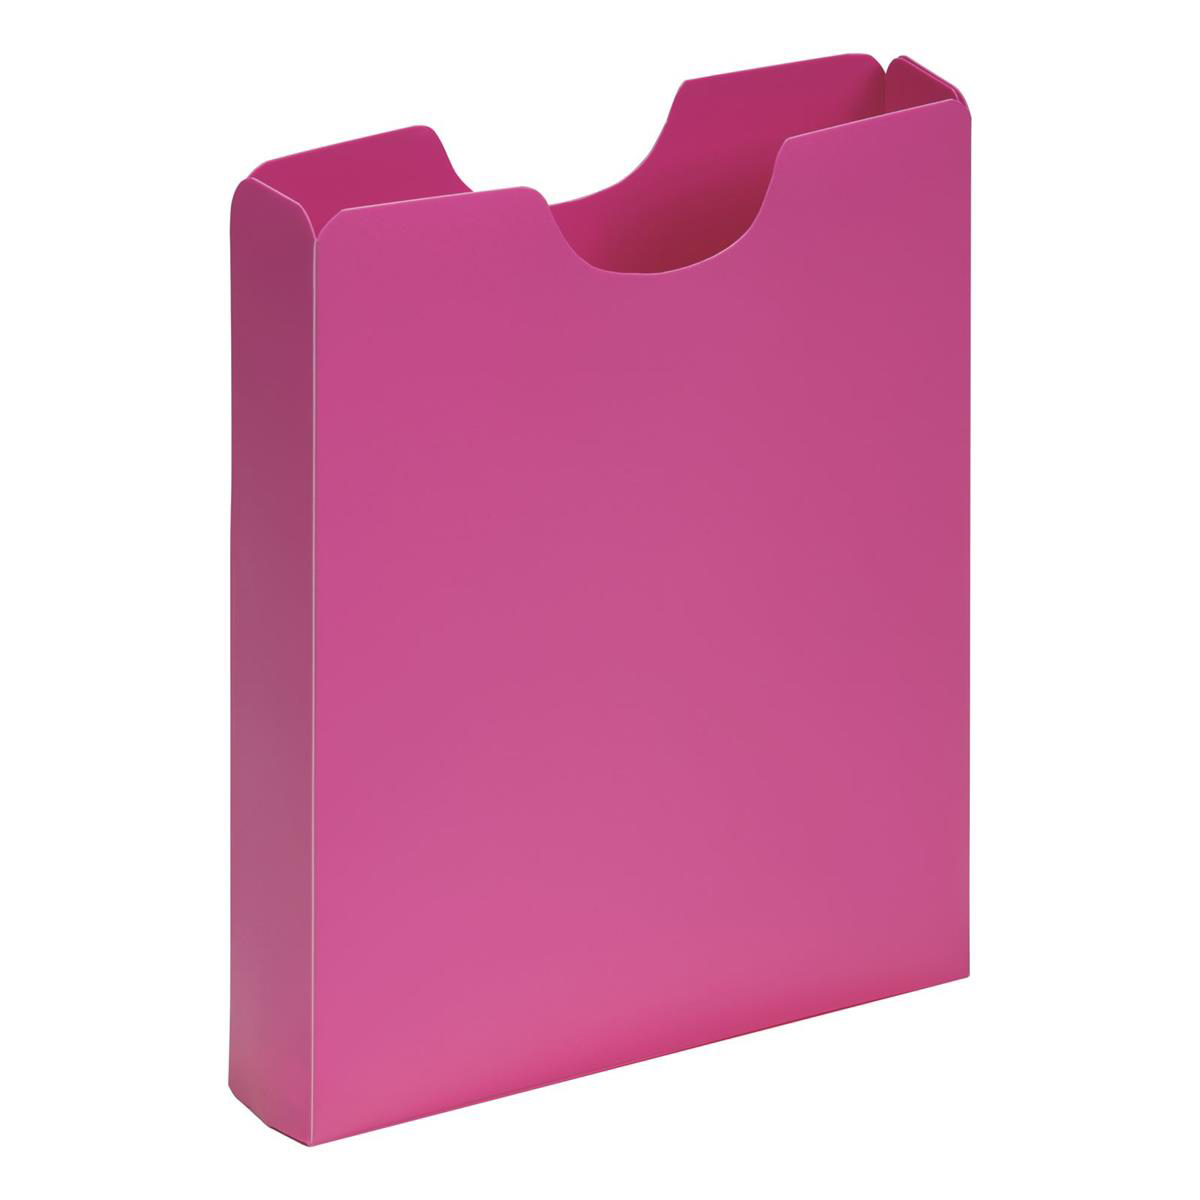 Pagna Carry Case Polypropylene A4 Dark Pink Ref 2100534 [Pack 10]